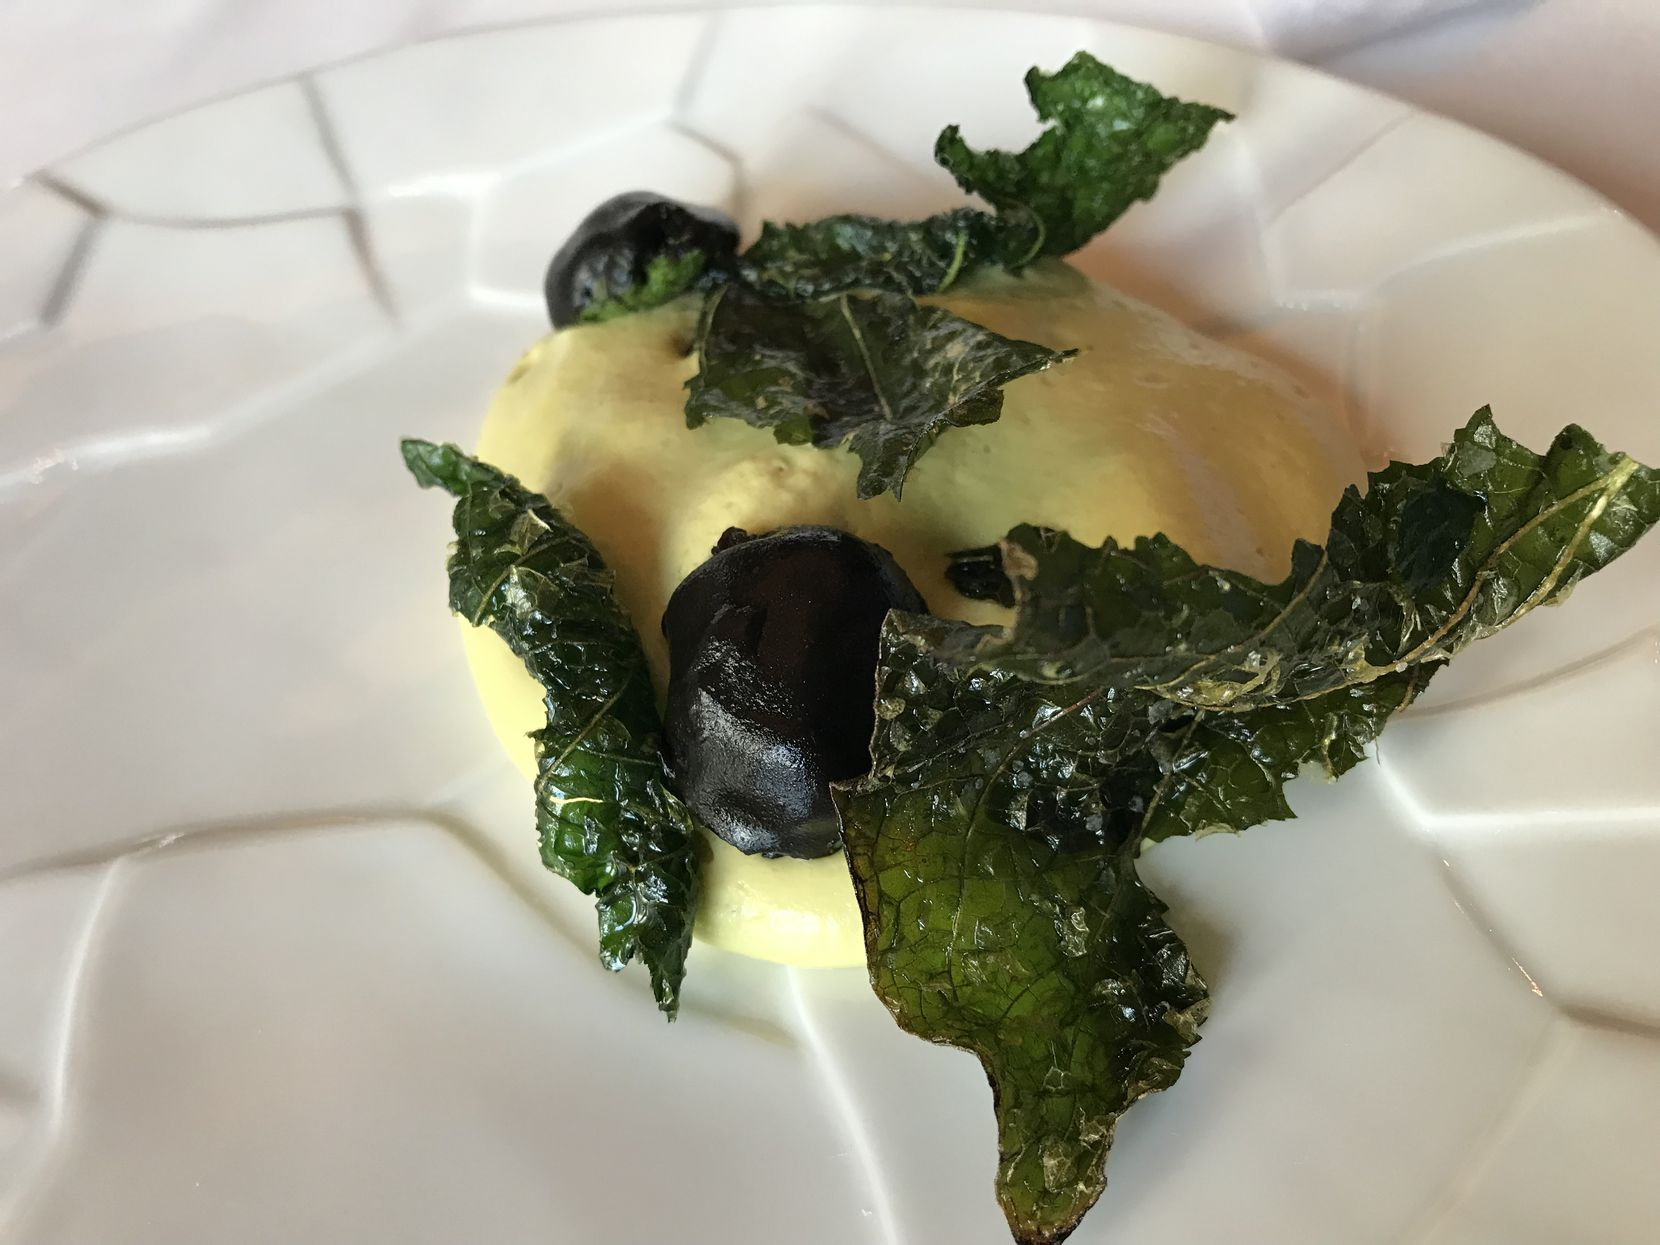 Poblano mousse with huitlacoche glaze and fried hoja santa, served by Diego Fernandez during his tryout dinner.